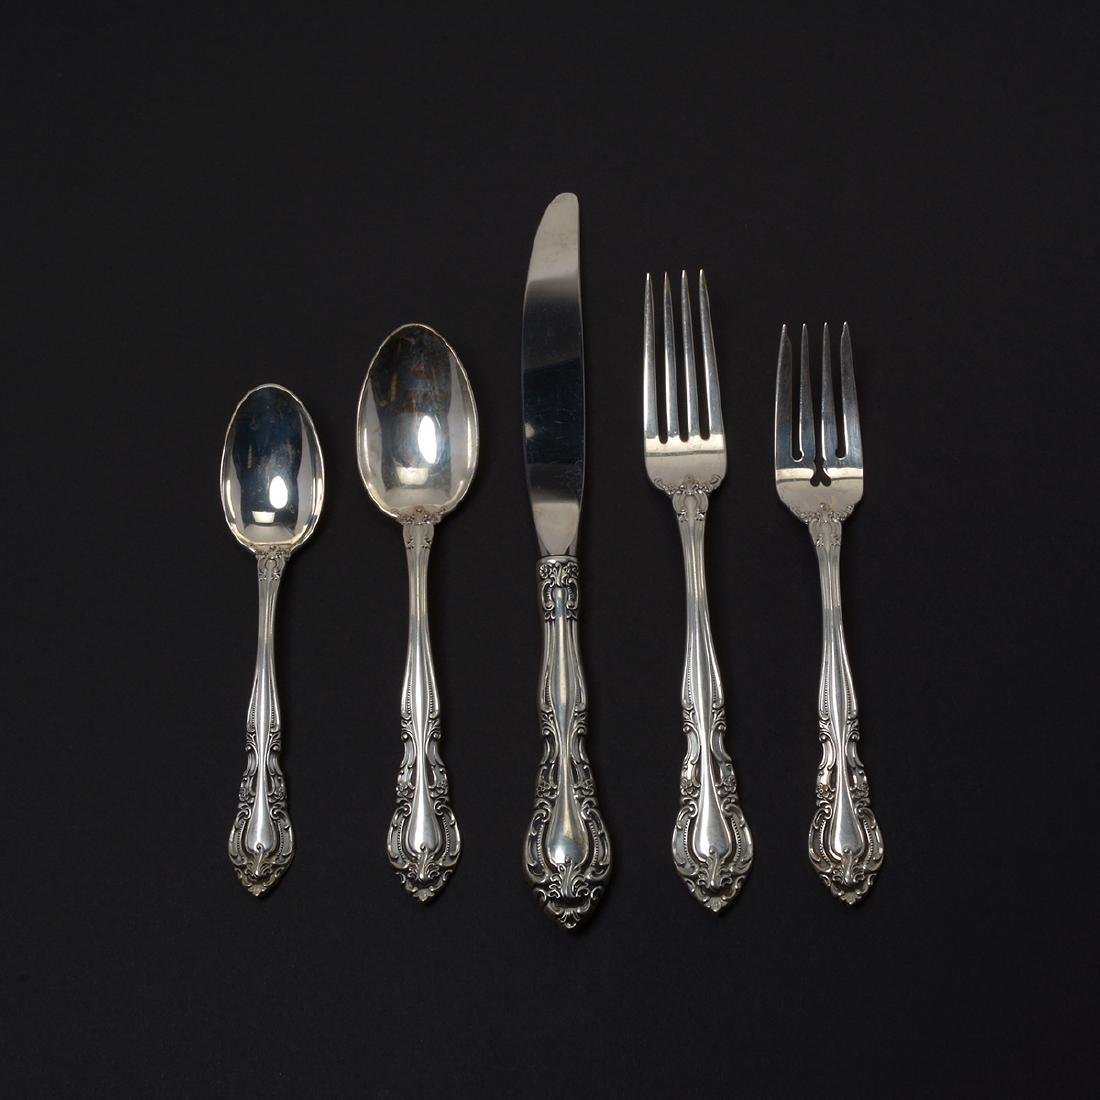 Alvin-Vivaldi Sterling Flatware Service (50 Pieces)